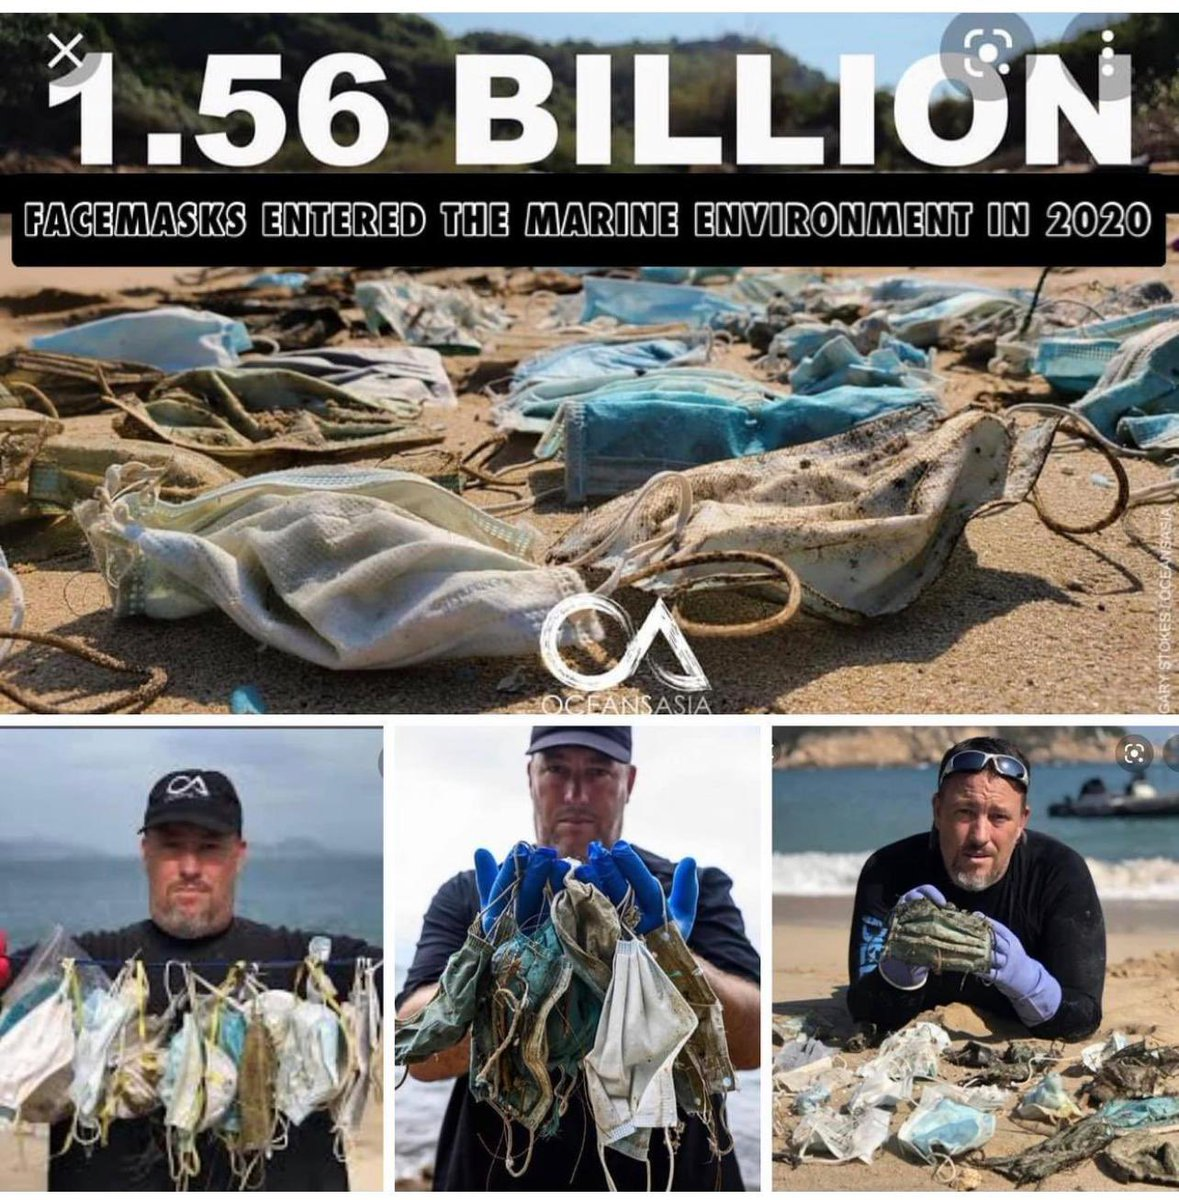 Mask wearing has become a masquerade of virtue but paradoxically causes collateral damages. Disposable plastic masks have created an environmental disaster. 1.56 billion face masks entered the oceans in 2020 and wildlife are being entangled by masks.  #Maskquarade https://t.co/ybGlTsUYmL